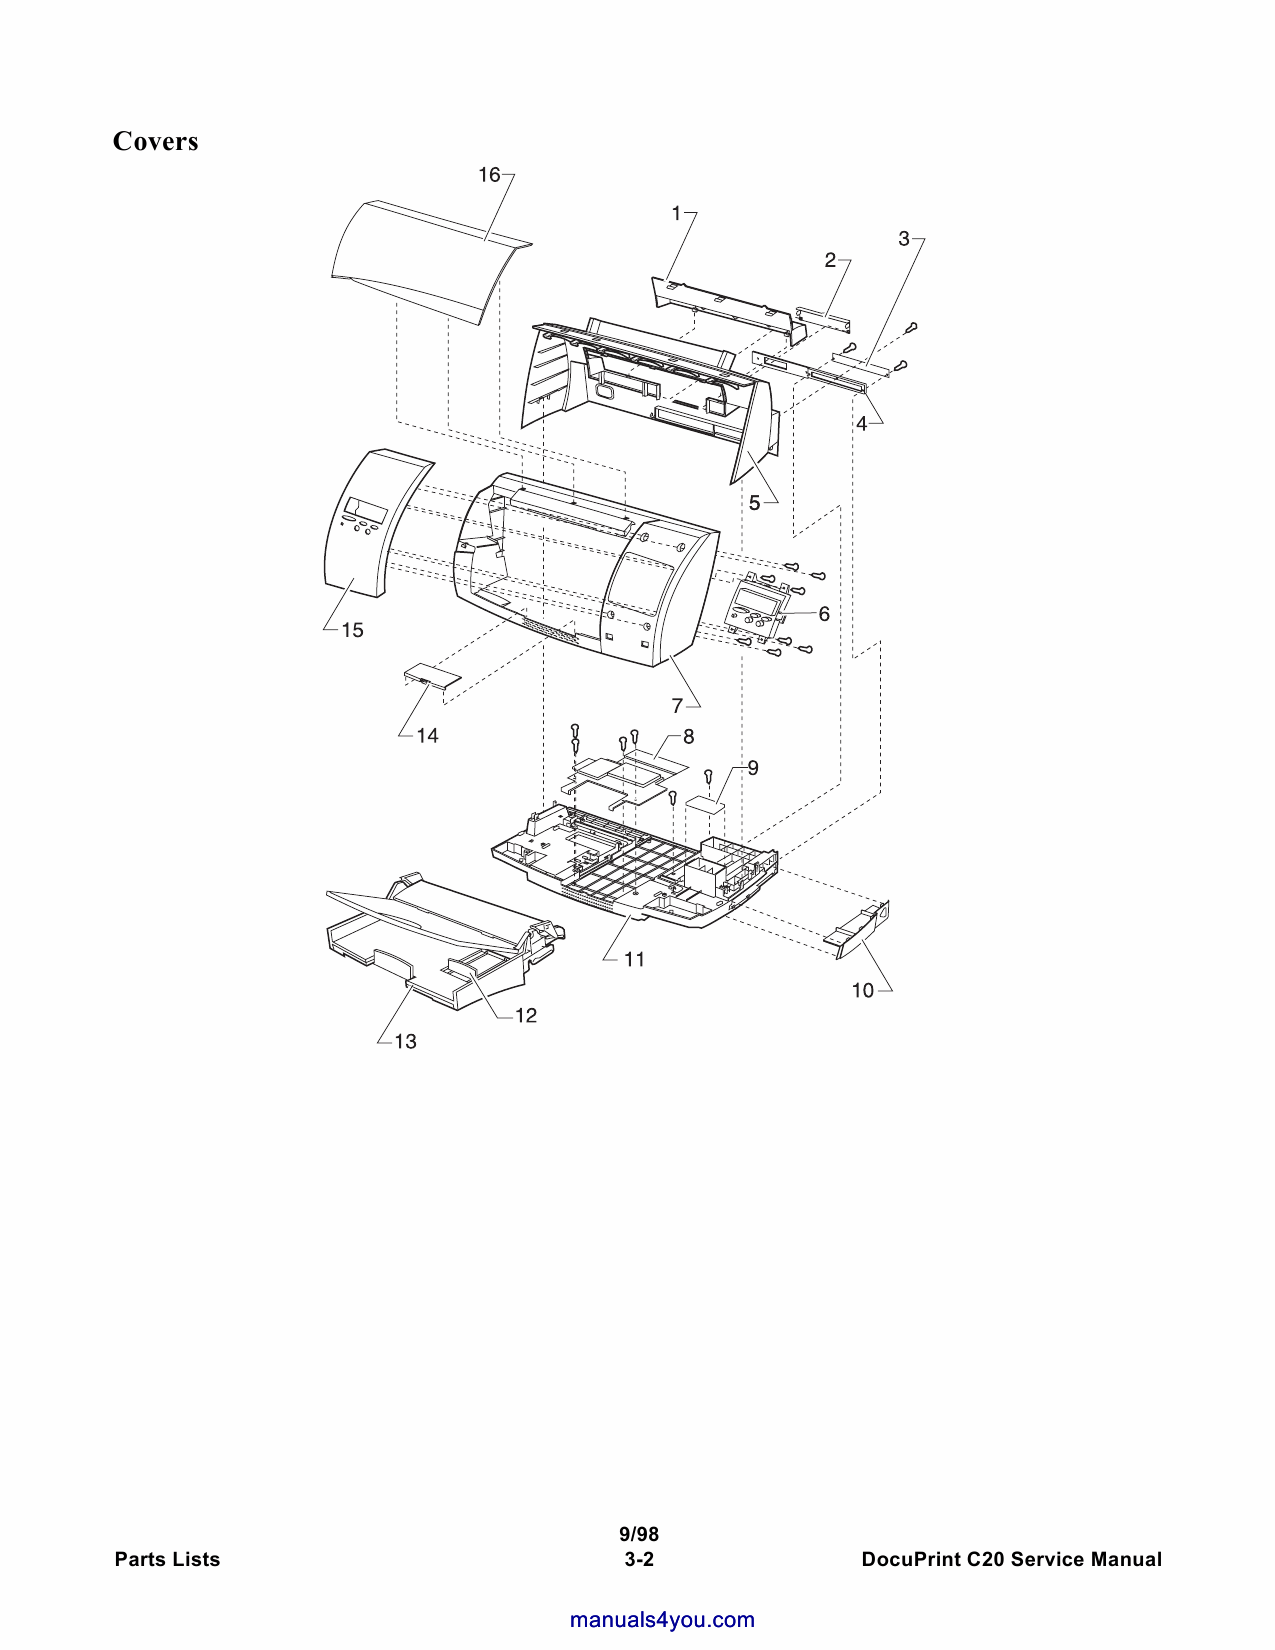 Xerox DocuPrint C20 Parts List and Service Manual-3